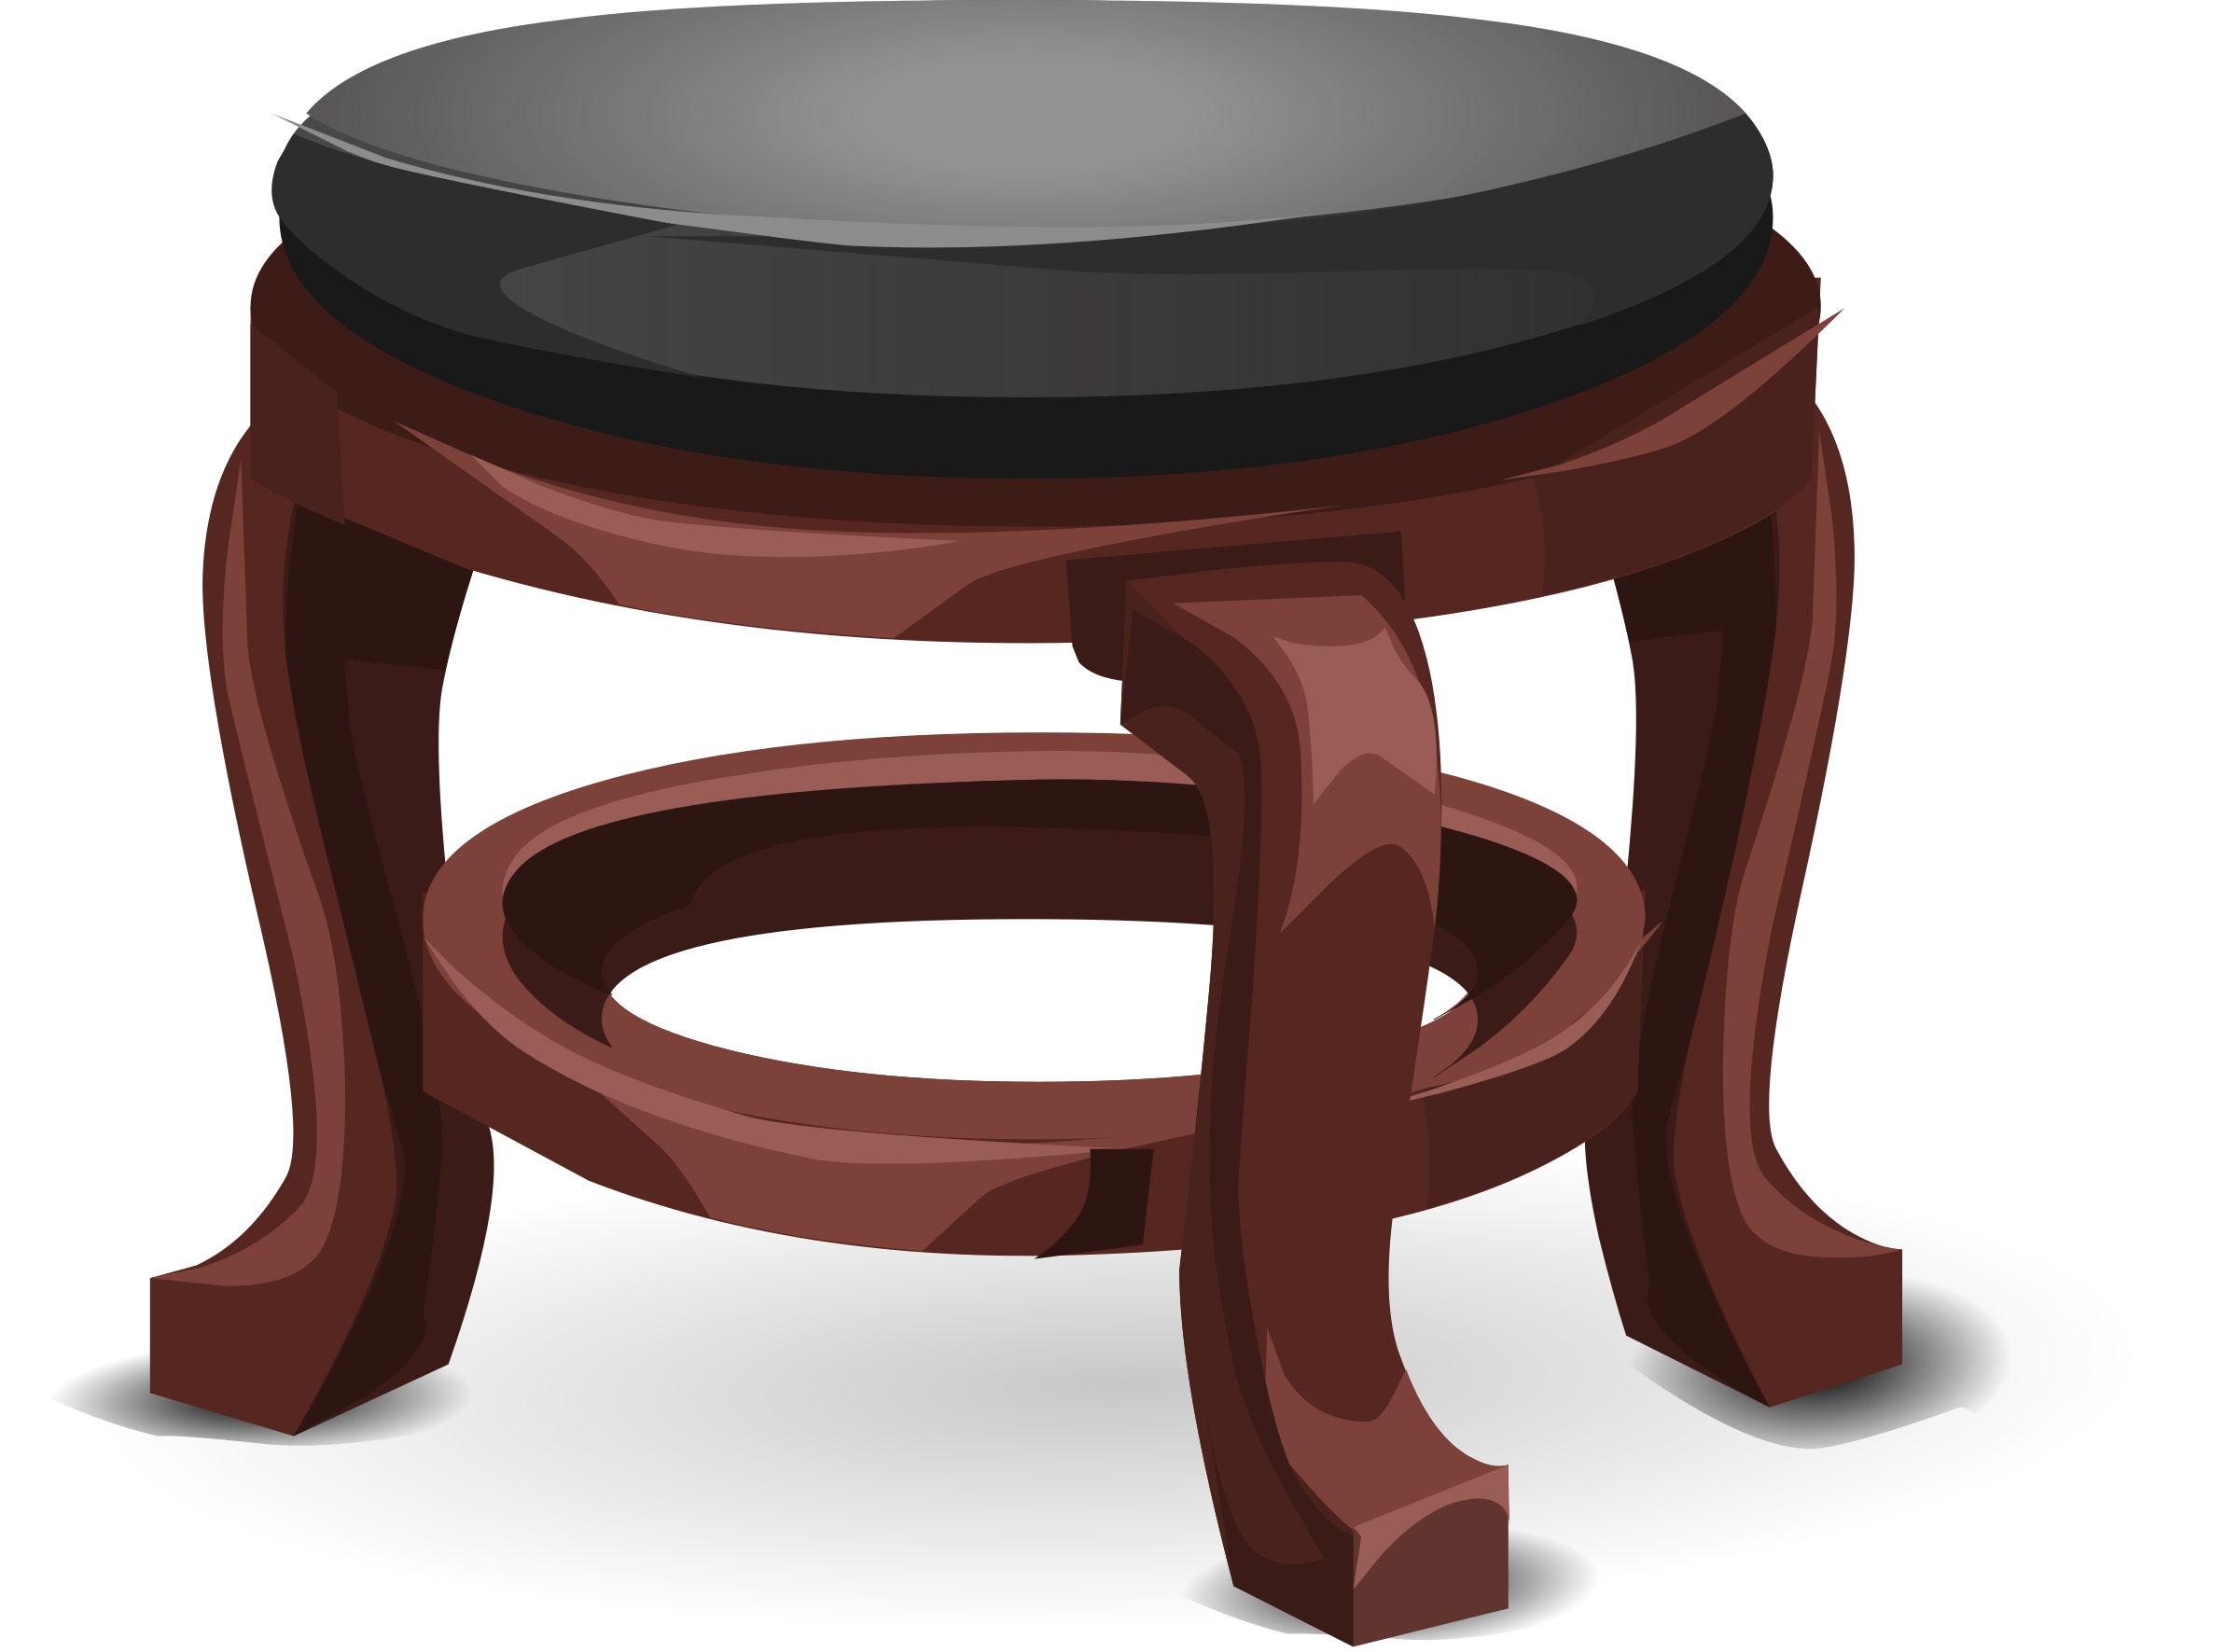 Clipart chair wooden stool. From glitch big image